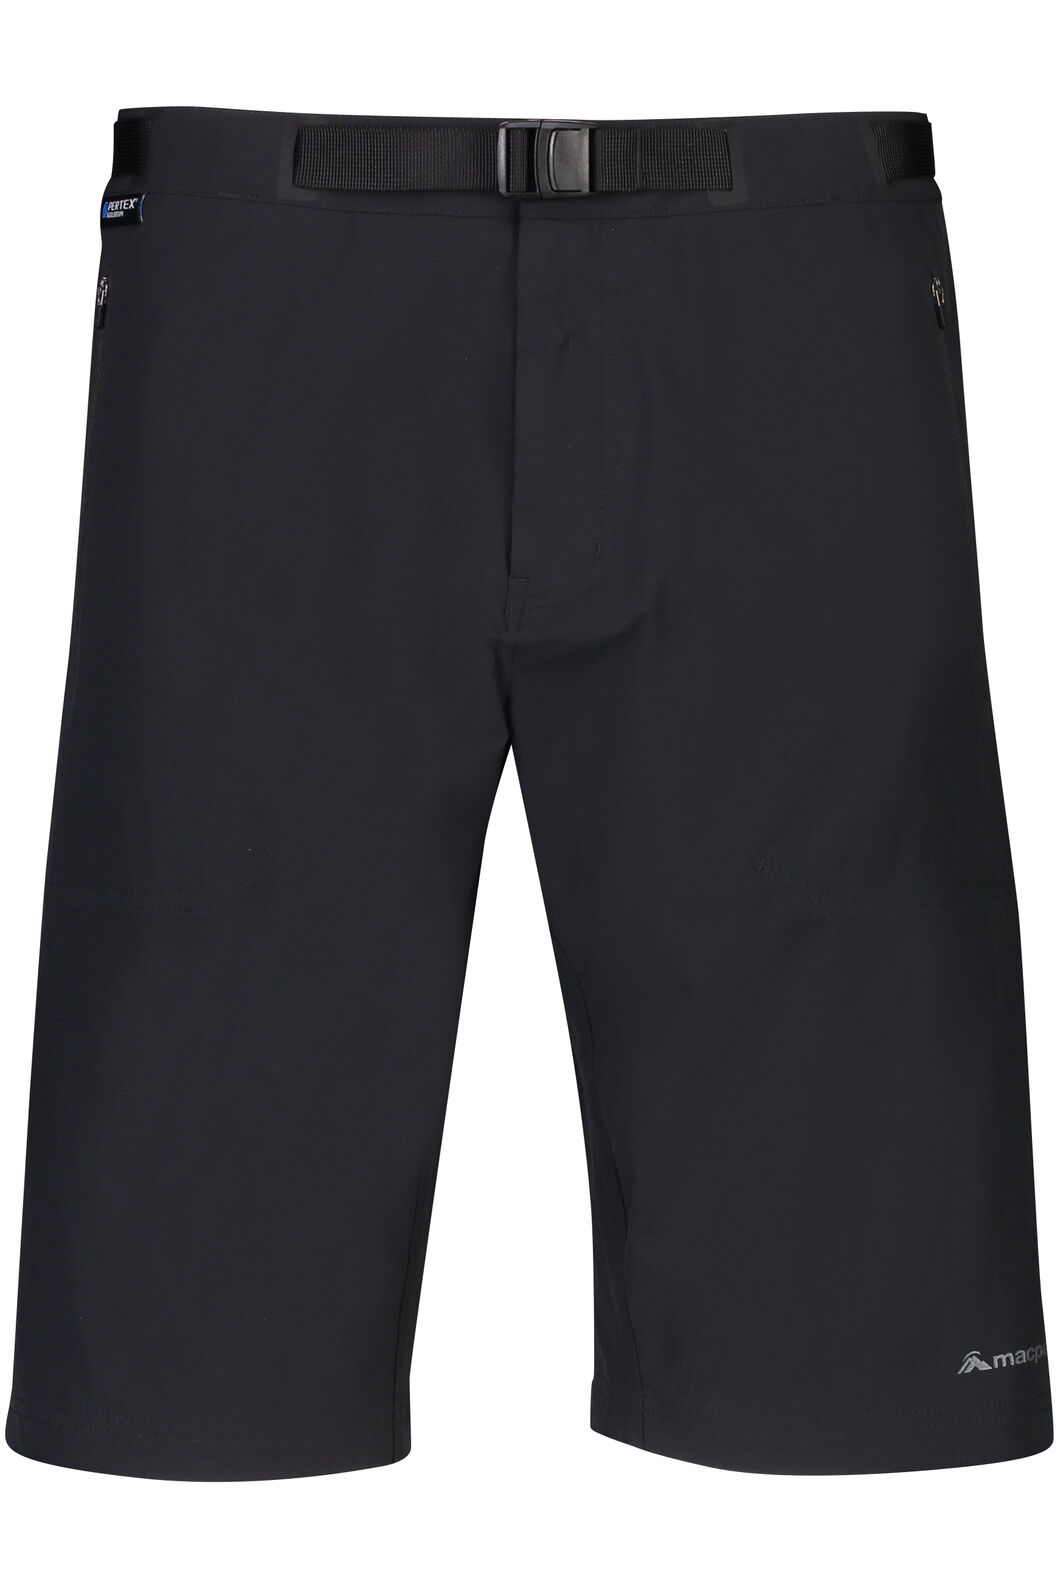 Macpac Trekker Pertex® Equilibrium Softshell Shorts - Men's, Black, hi-res